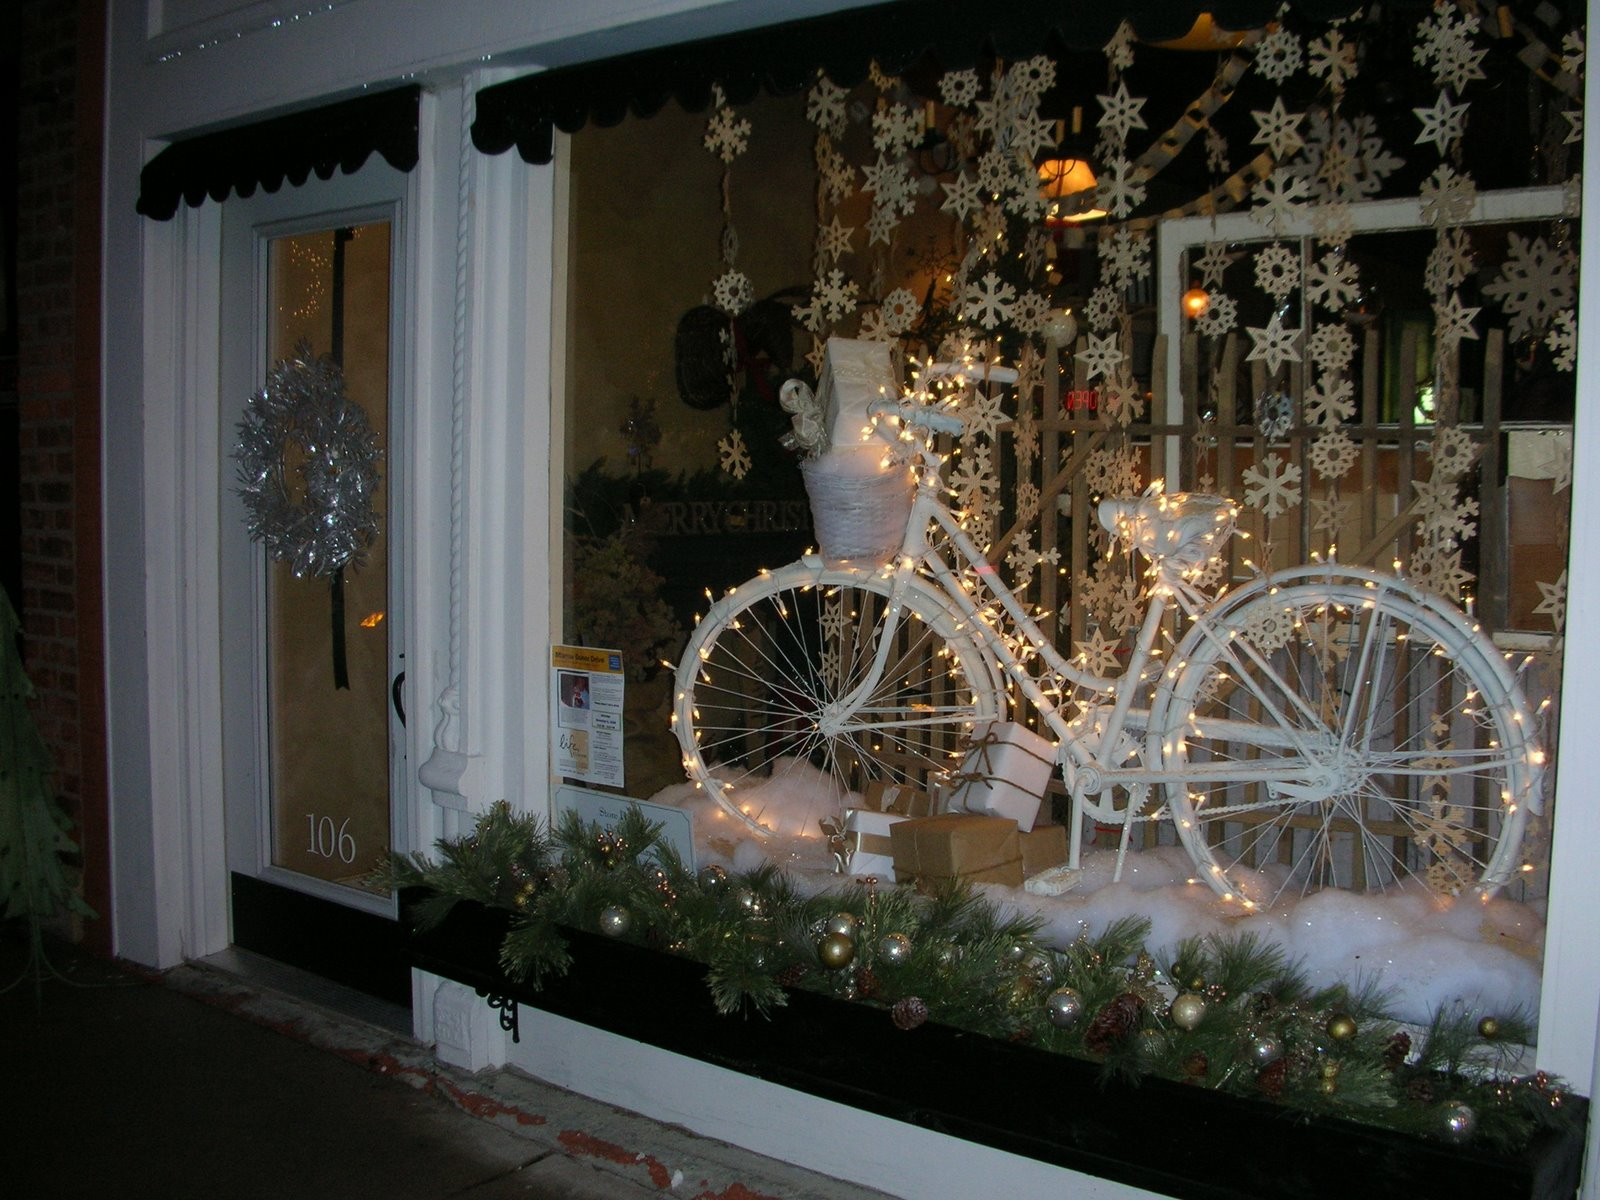 The attraction of this Christmas window display it's the adorned white bicycle and the rest of details are assorted well.